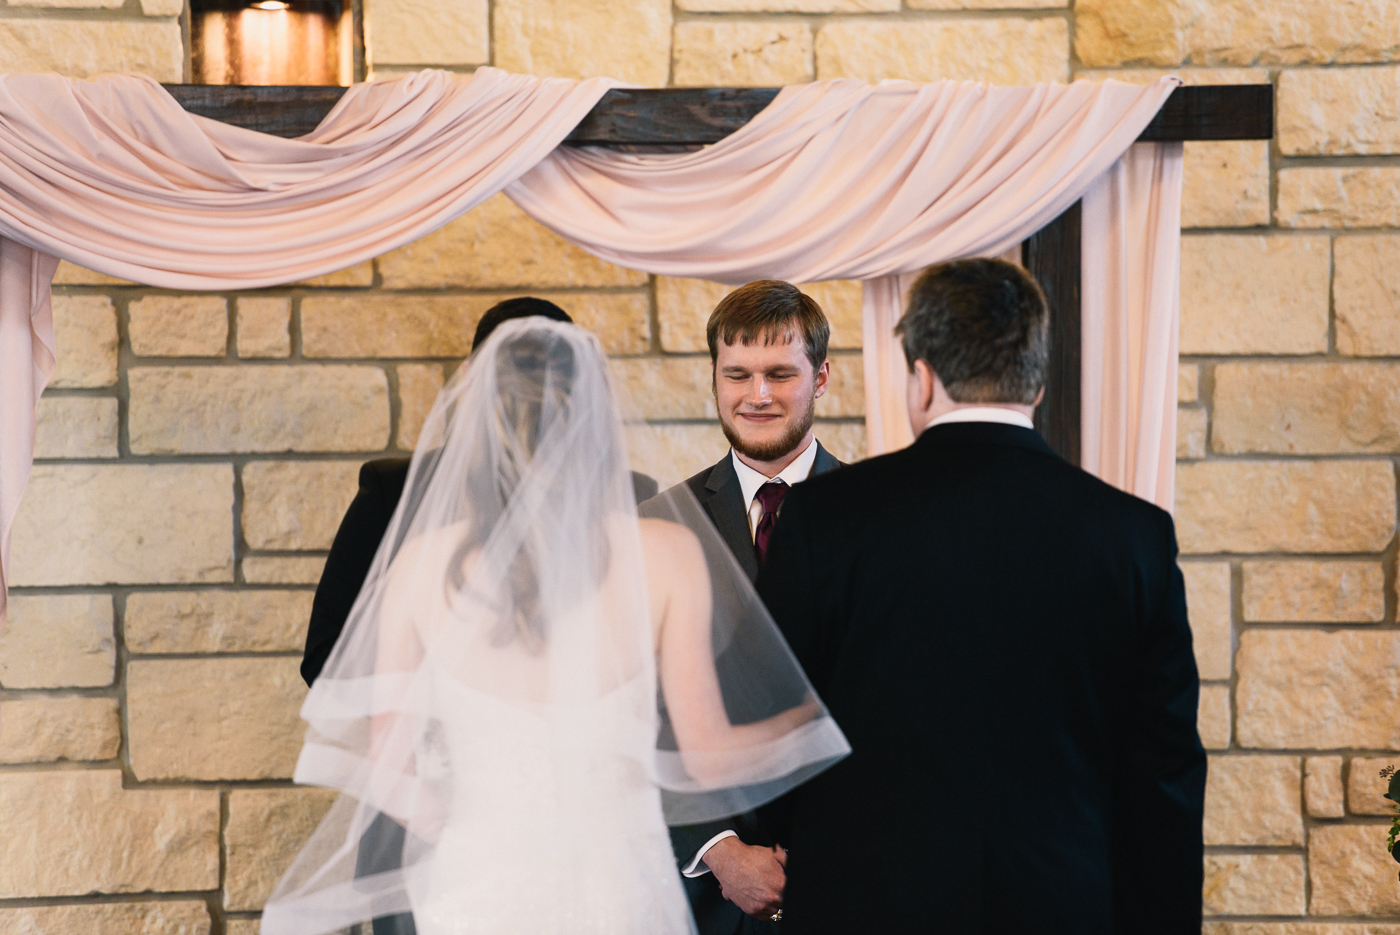 Giving away the bride wedding ceremony bride and groom father of the bride wedding arch